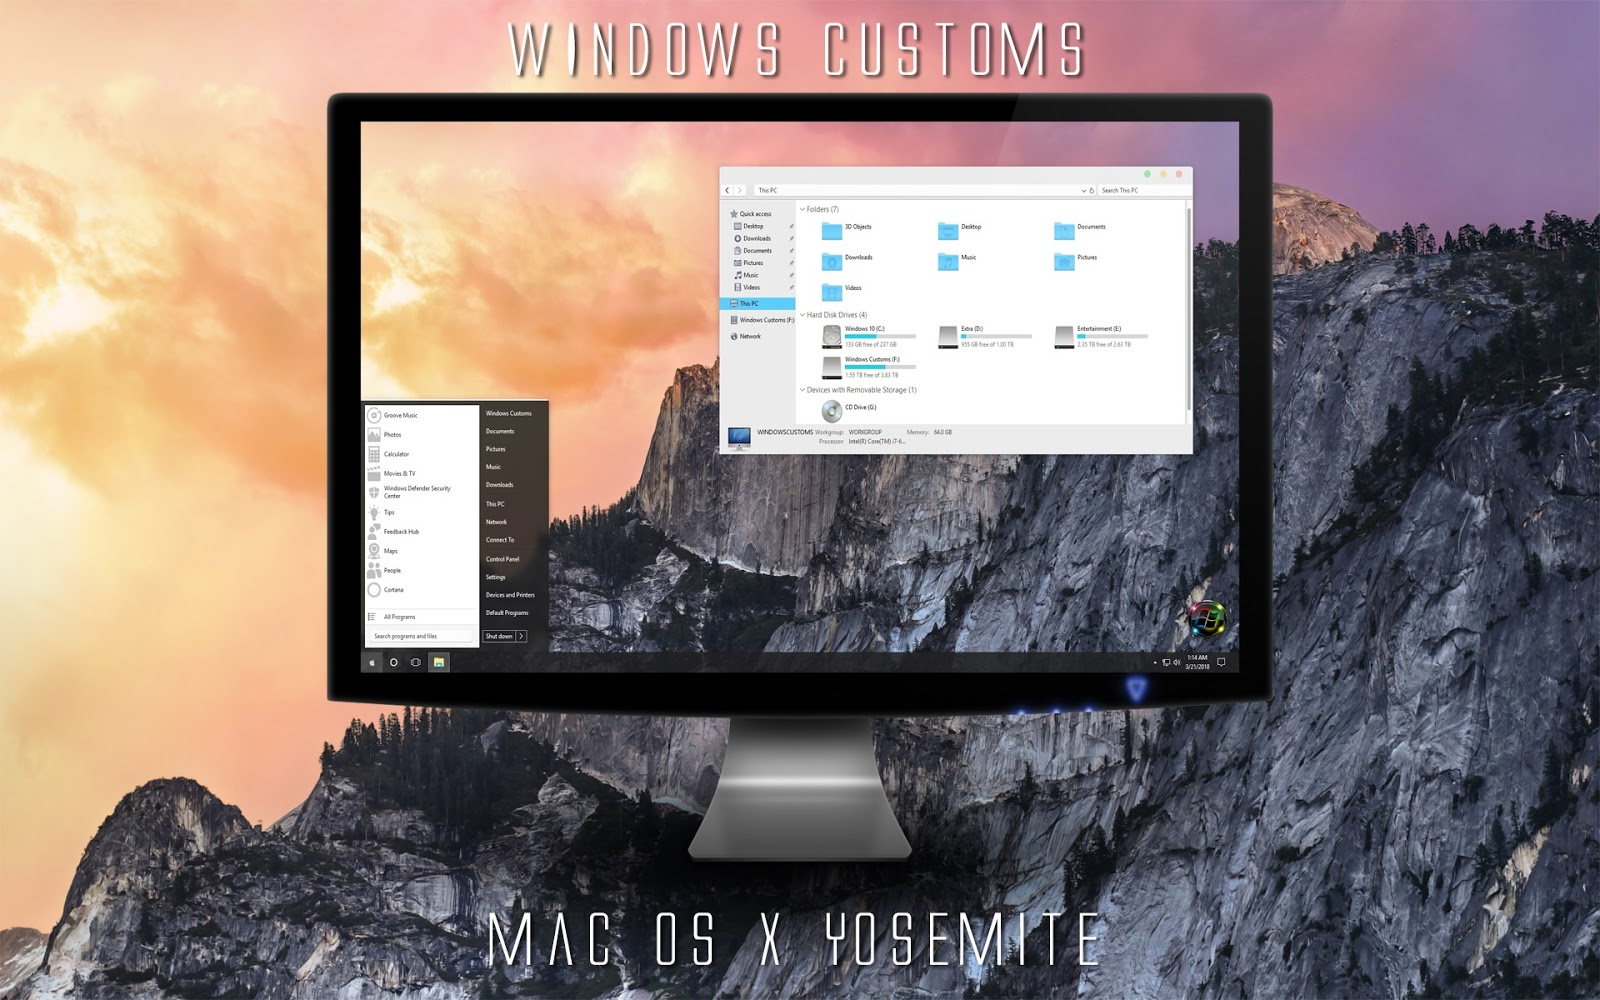 Windows Customs: Mac OS X Yosemite